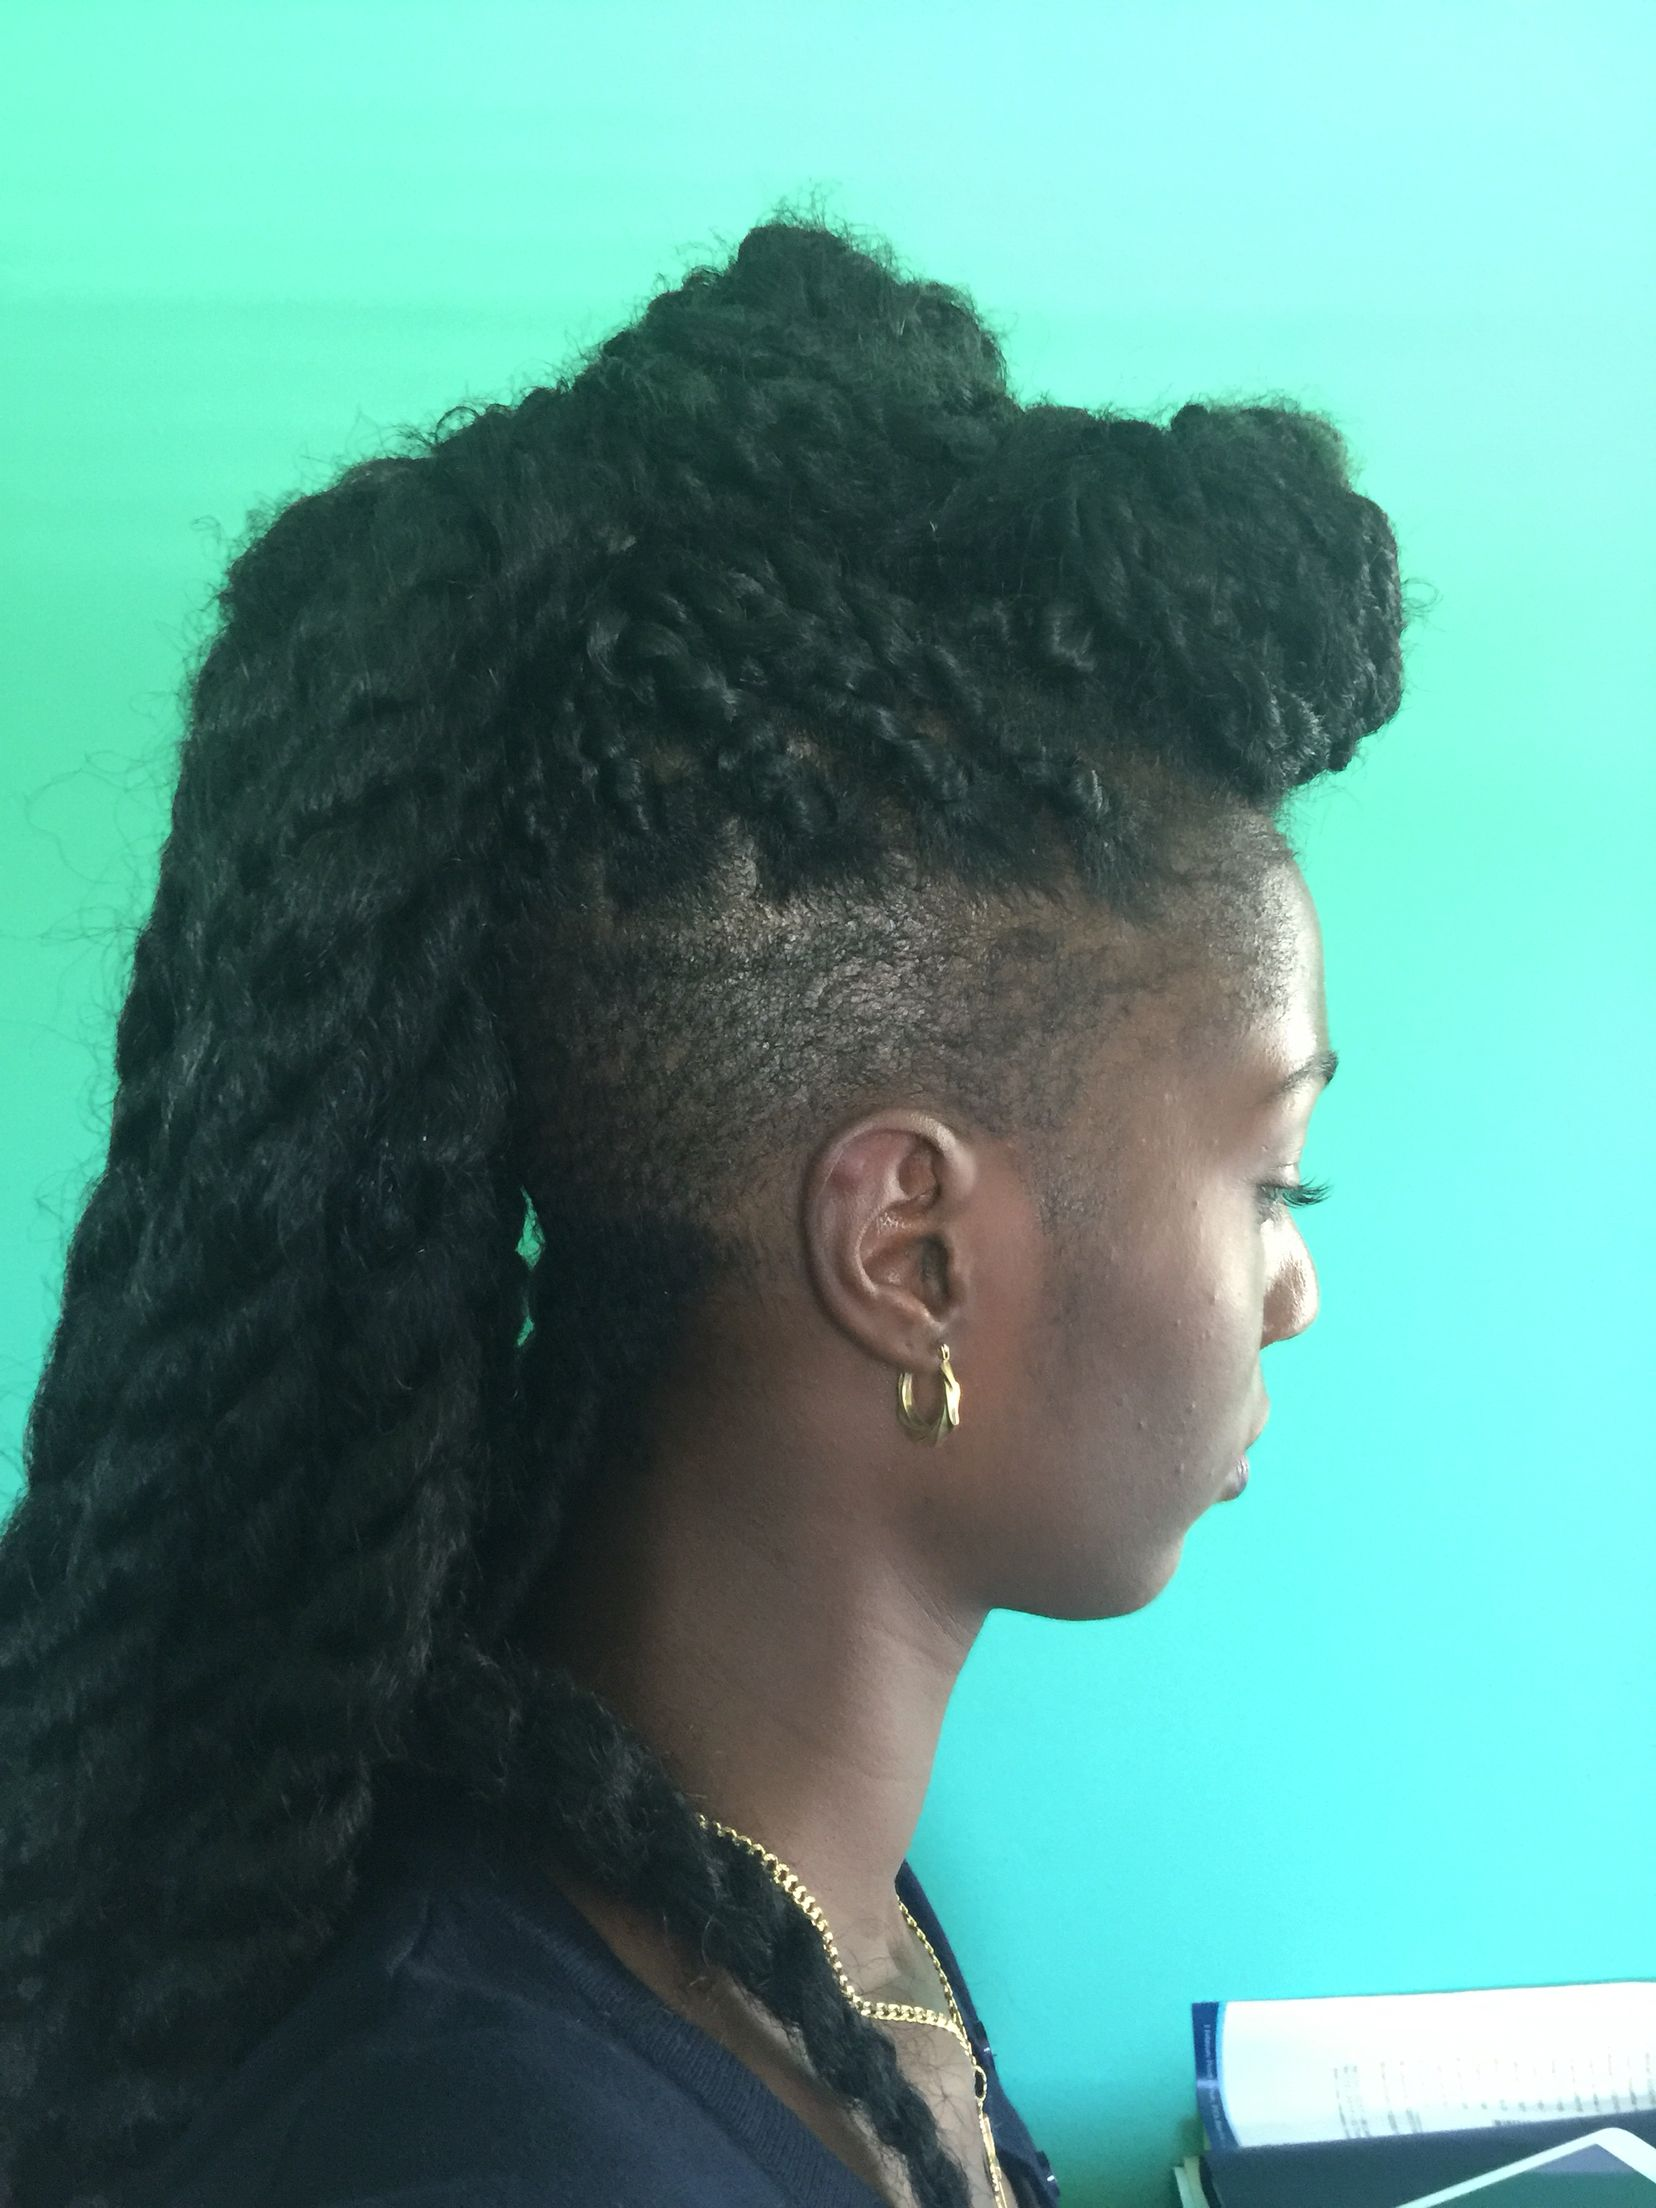 Marley braid in twist one loc my tapered cut natural hair journey